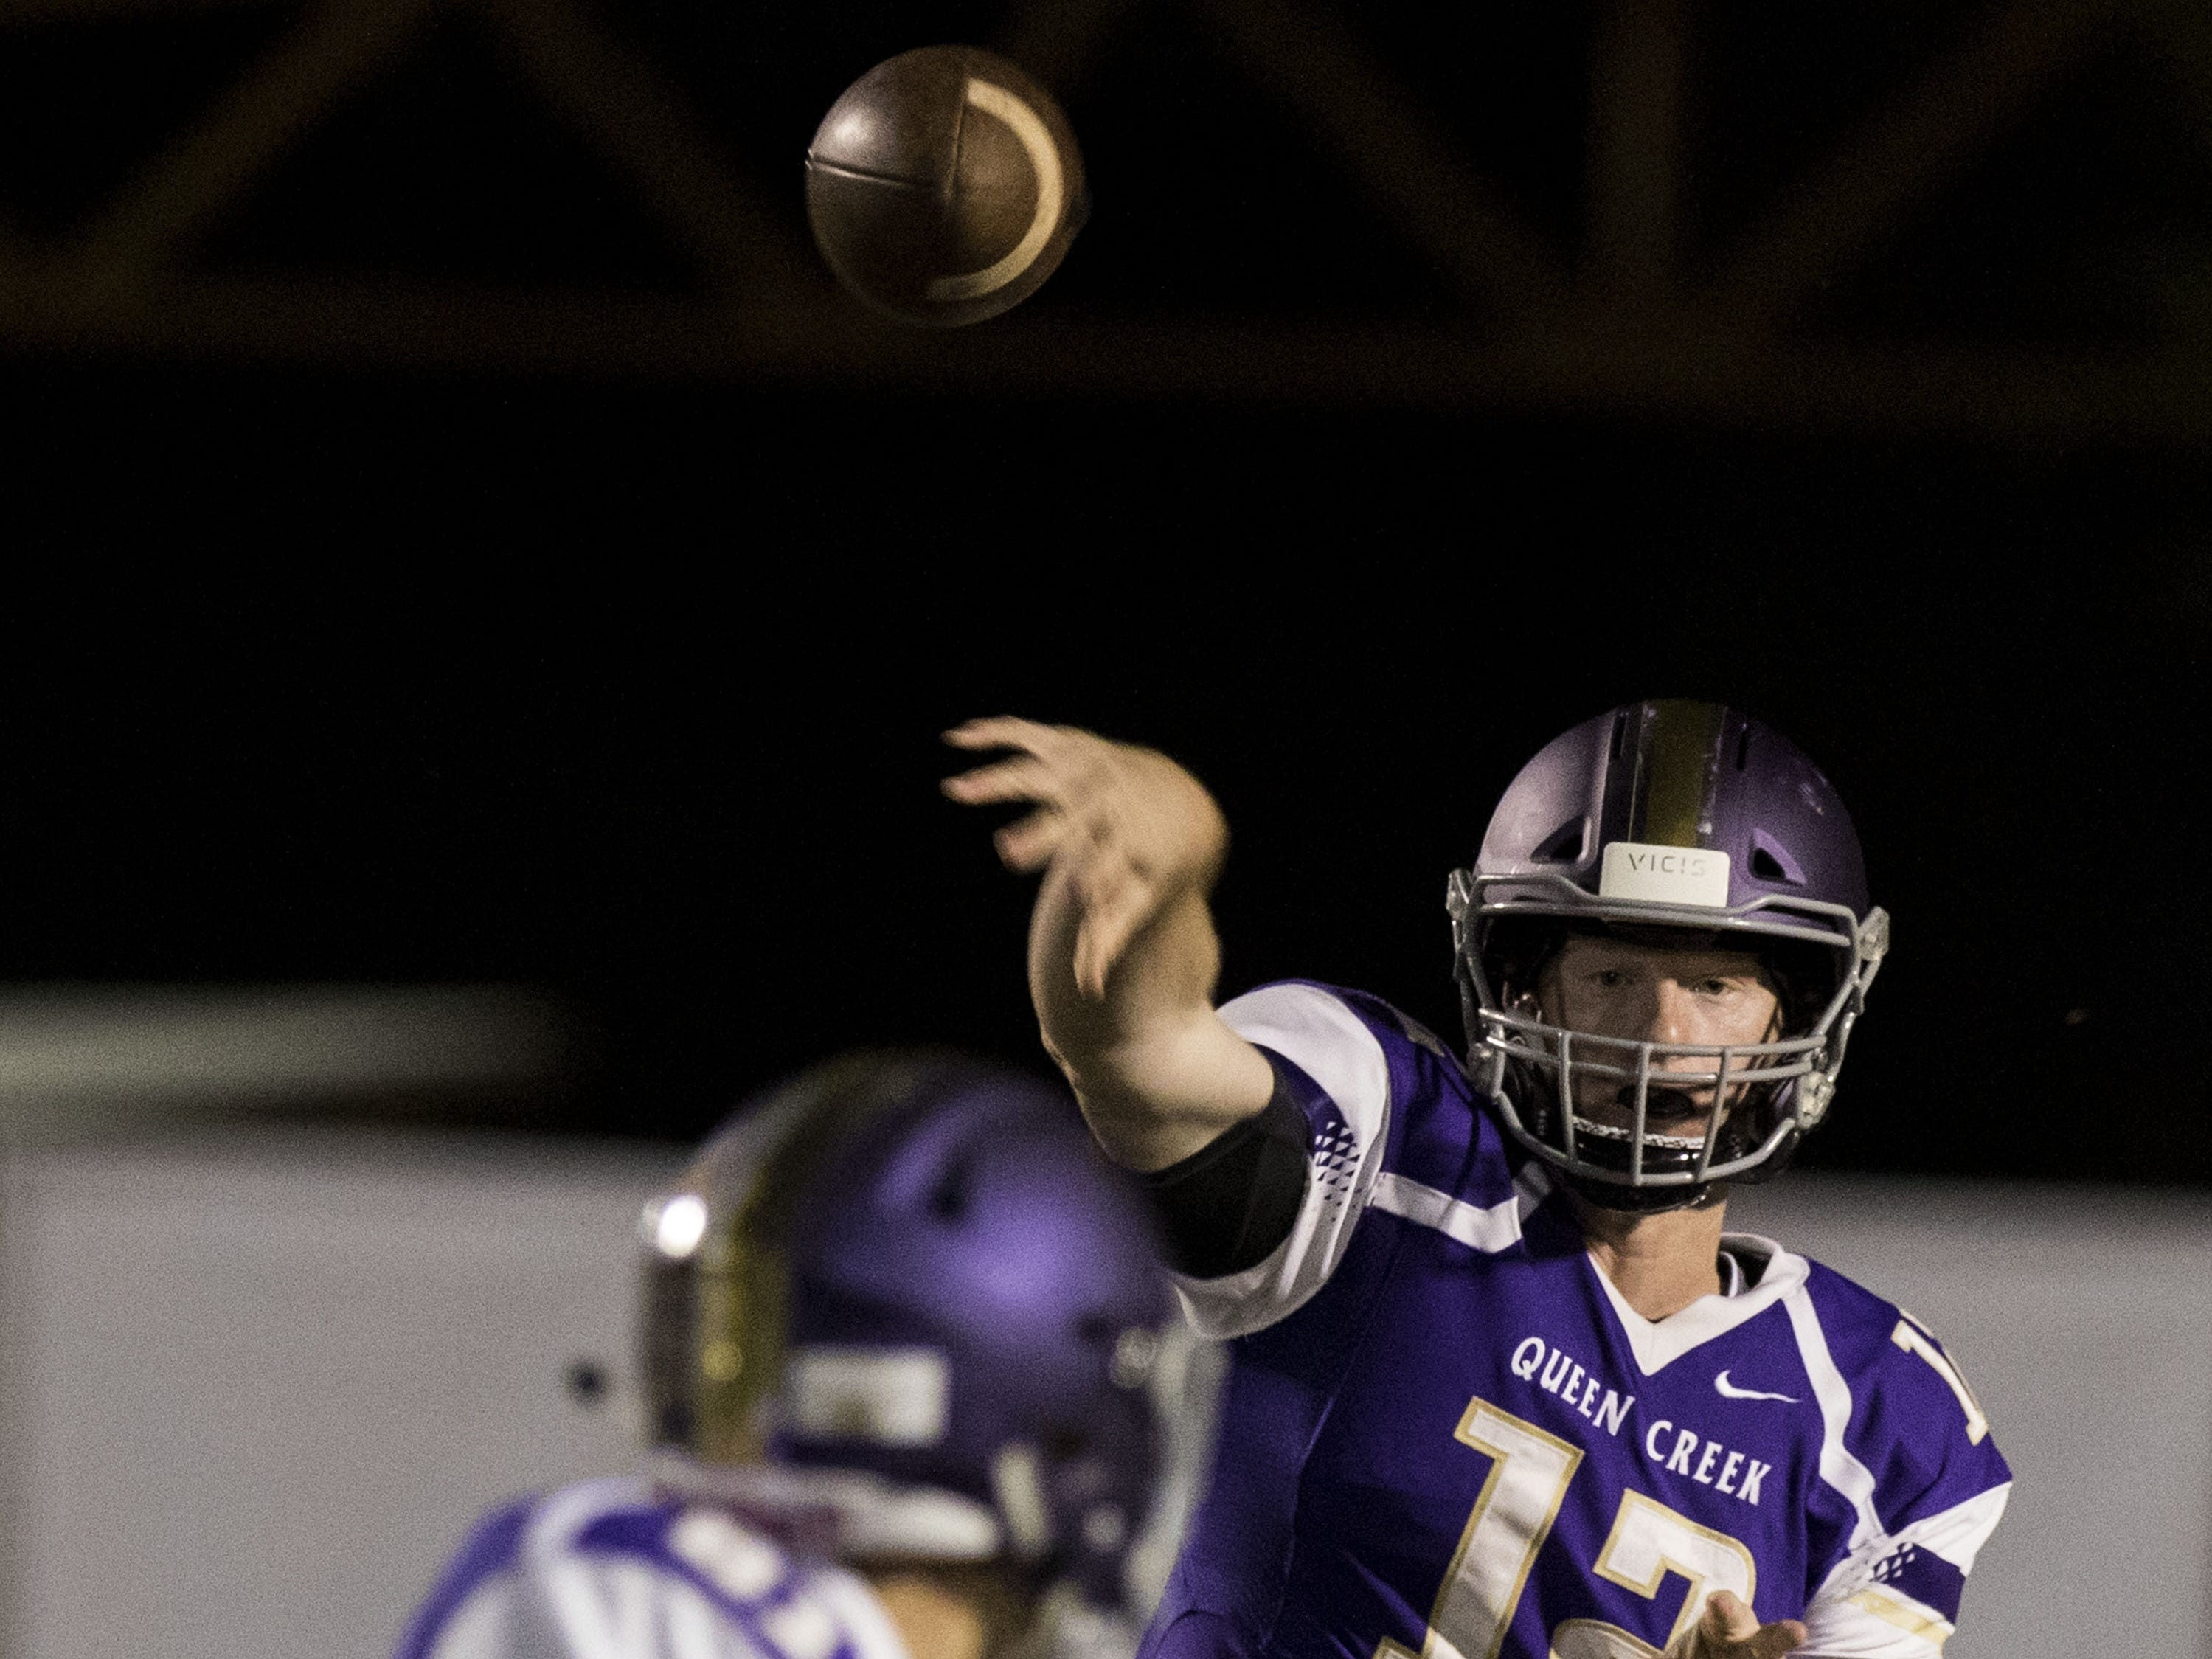 Queen Creek quarterback Devin Larsen throws a pass during their game against Highland in Queen Creek Friday, Oct. 19, 2018. #azhsfb